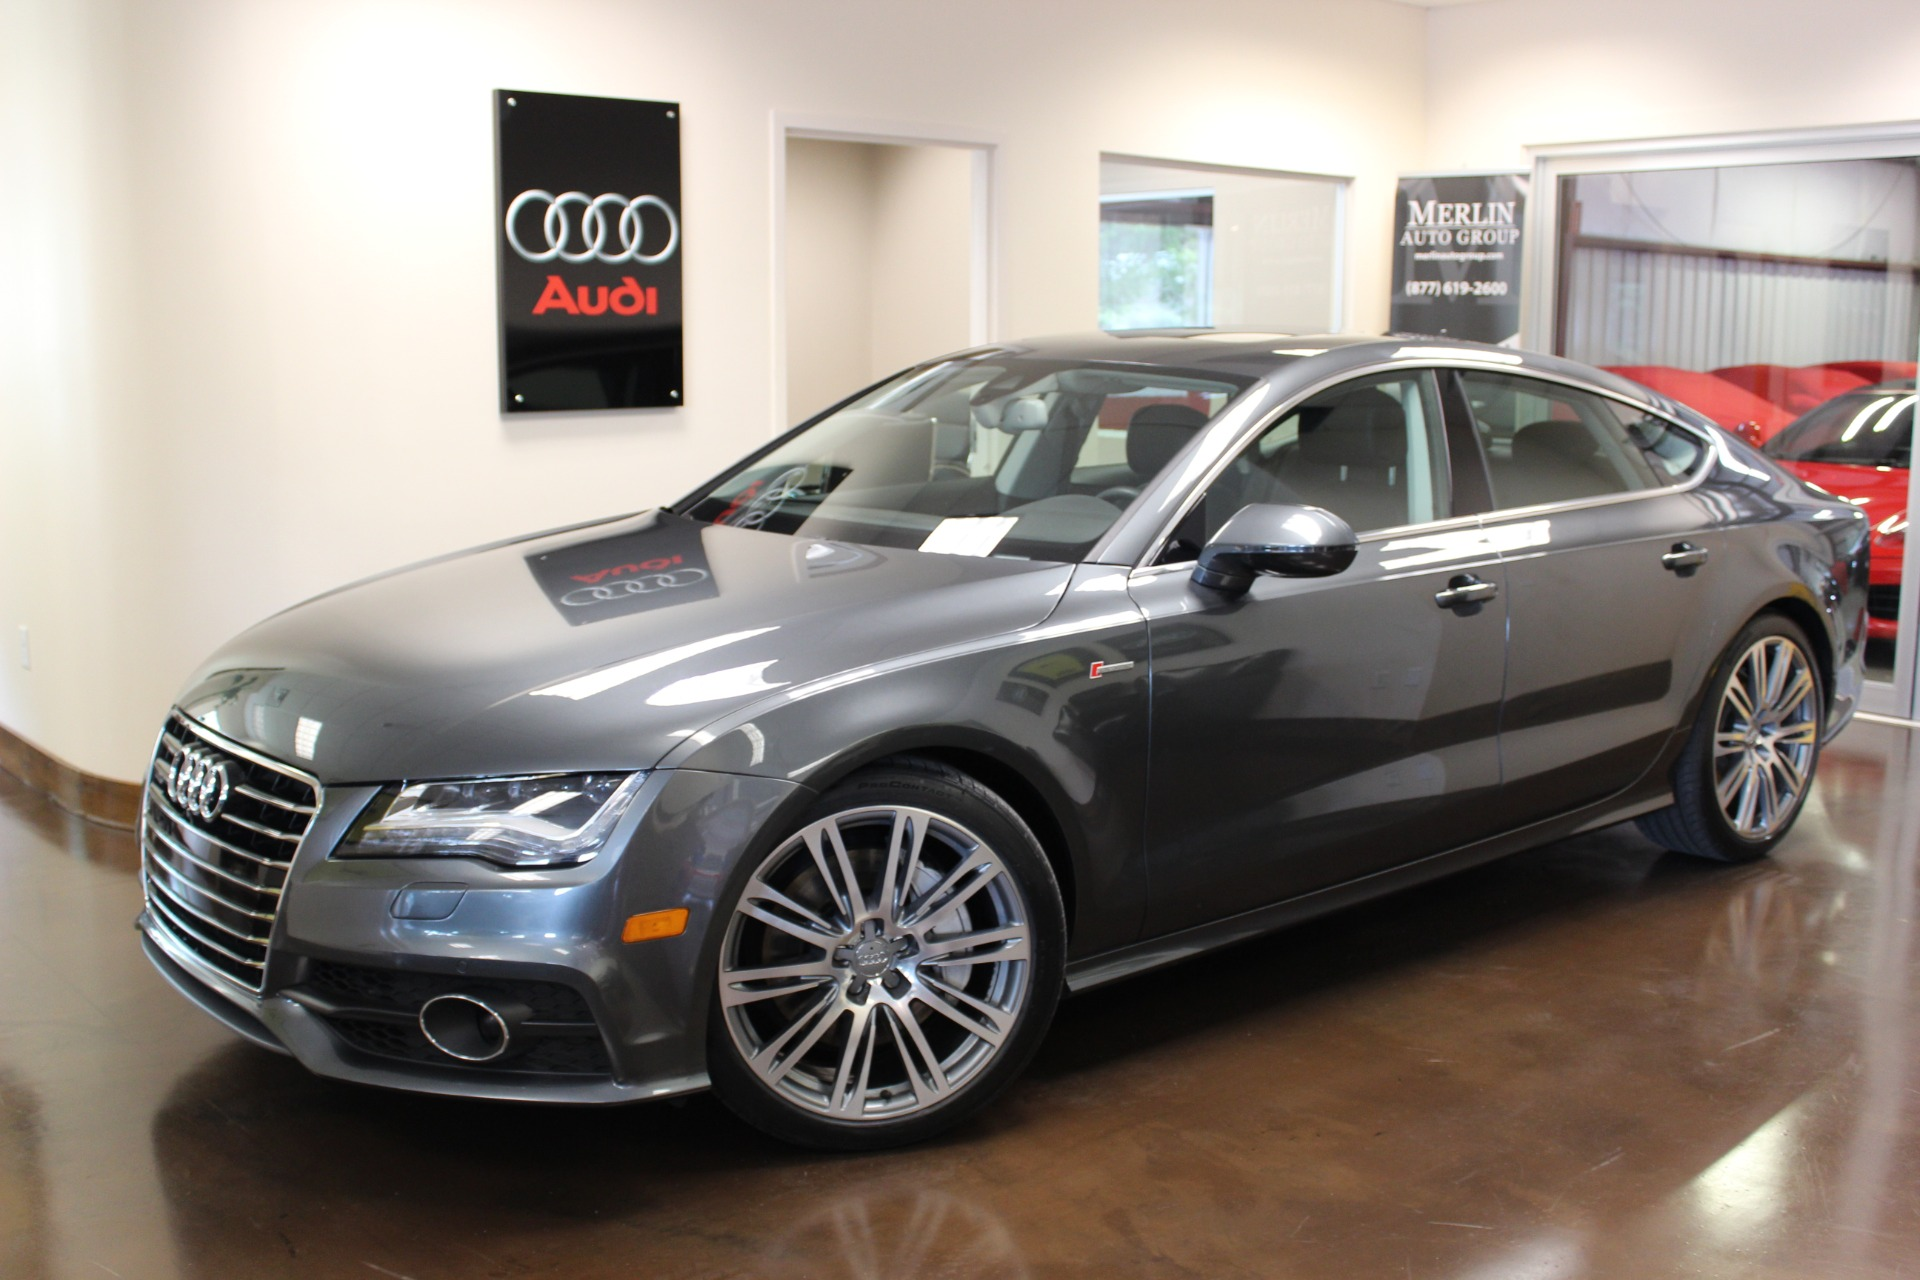 used 2014 audi a7 stock p3161 ultra luxury car from merlin auto group. Black Bedroom Furniture Sets. Home Design Ideas